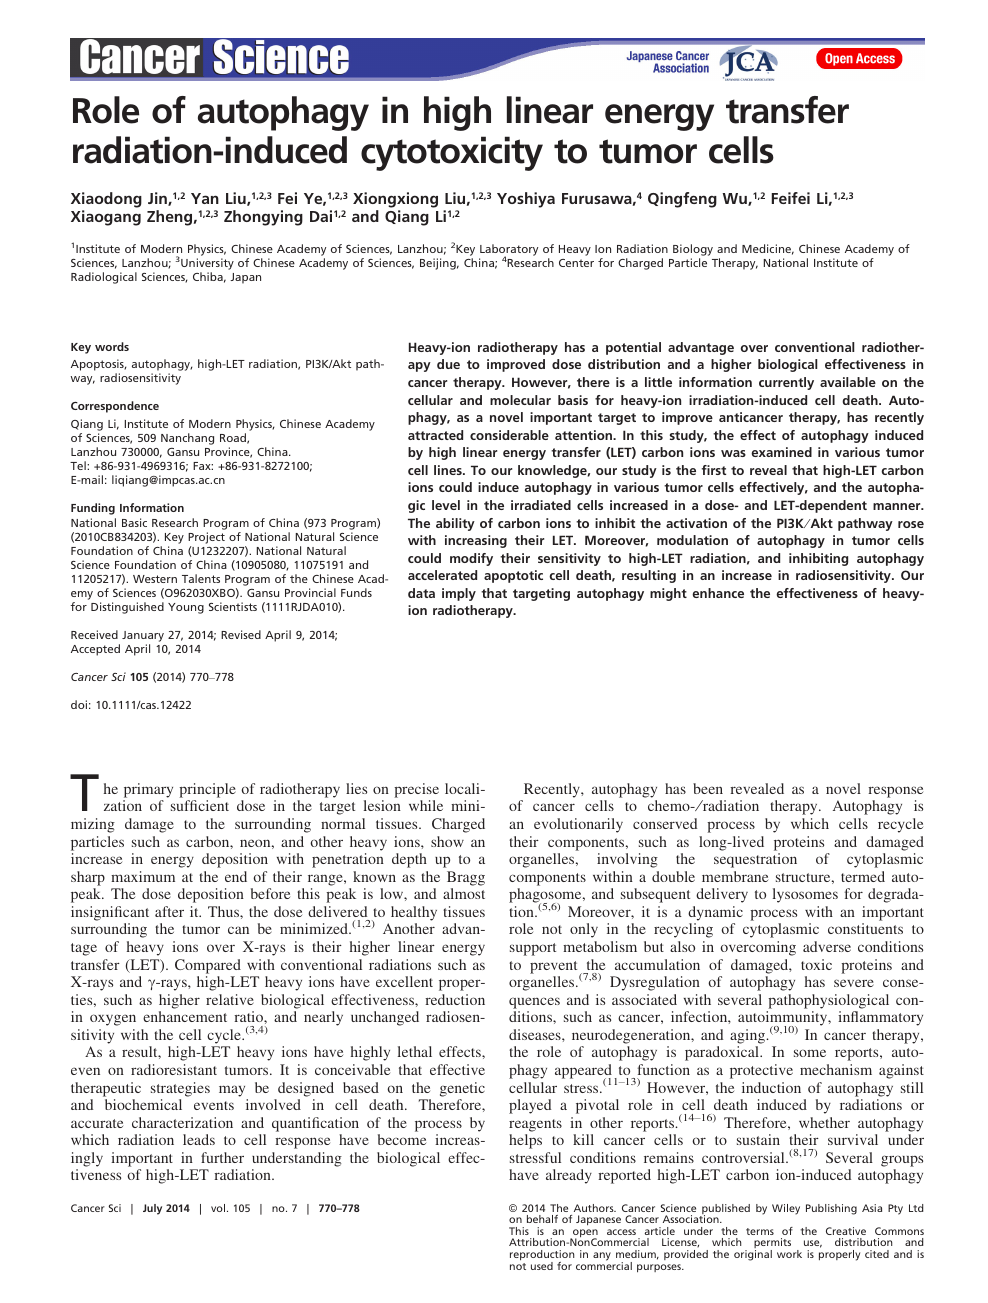 Role of autophagy in high linear energy transfer radiation